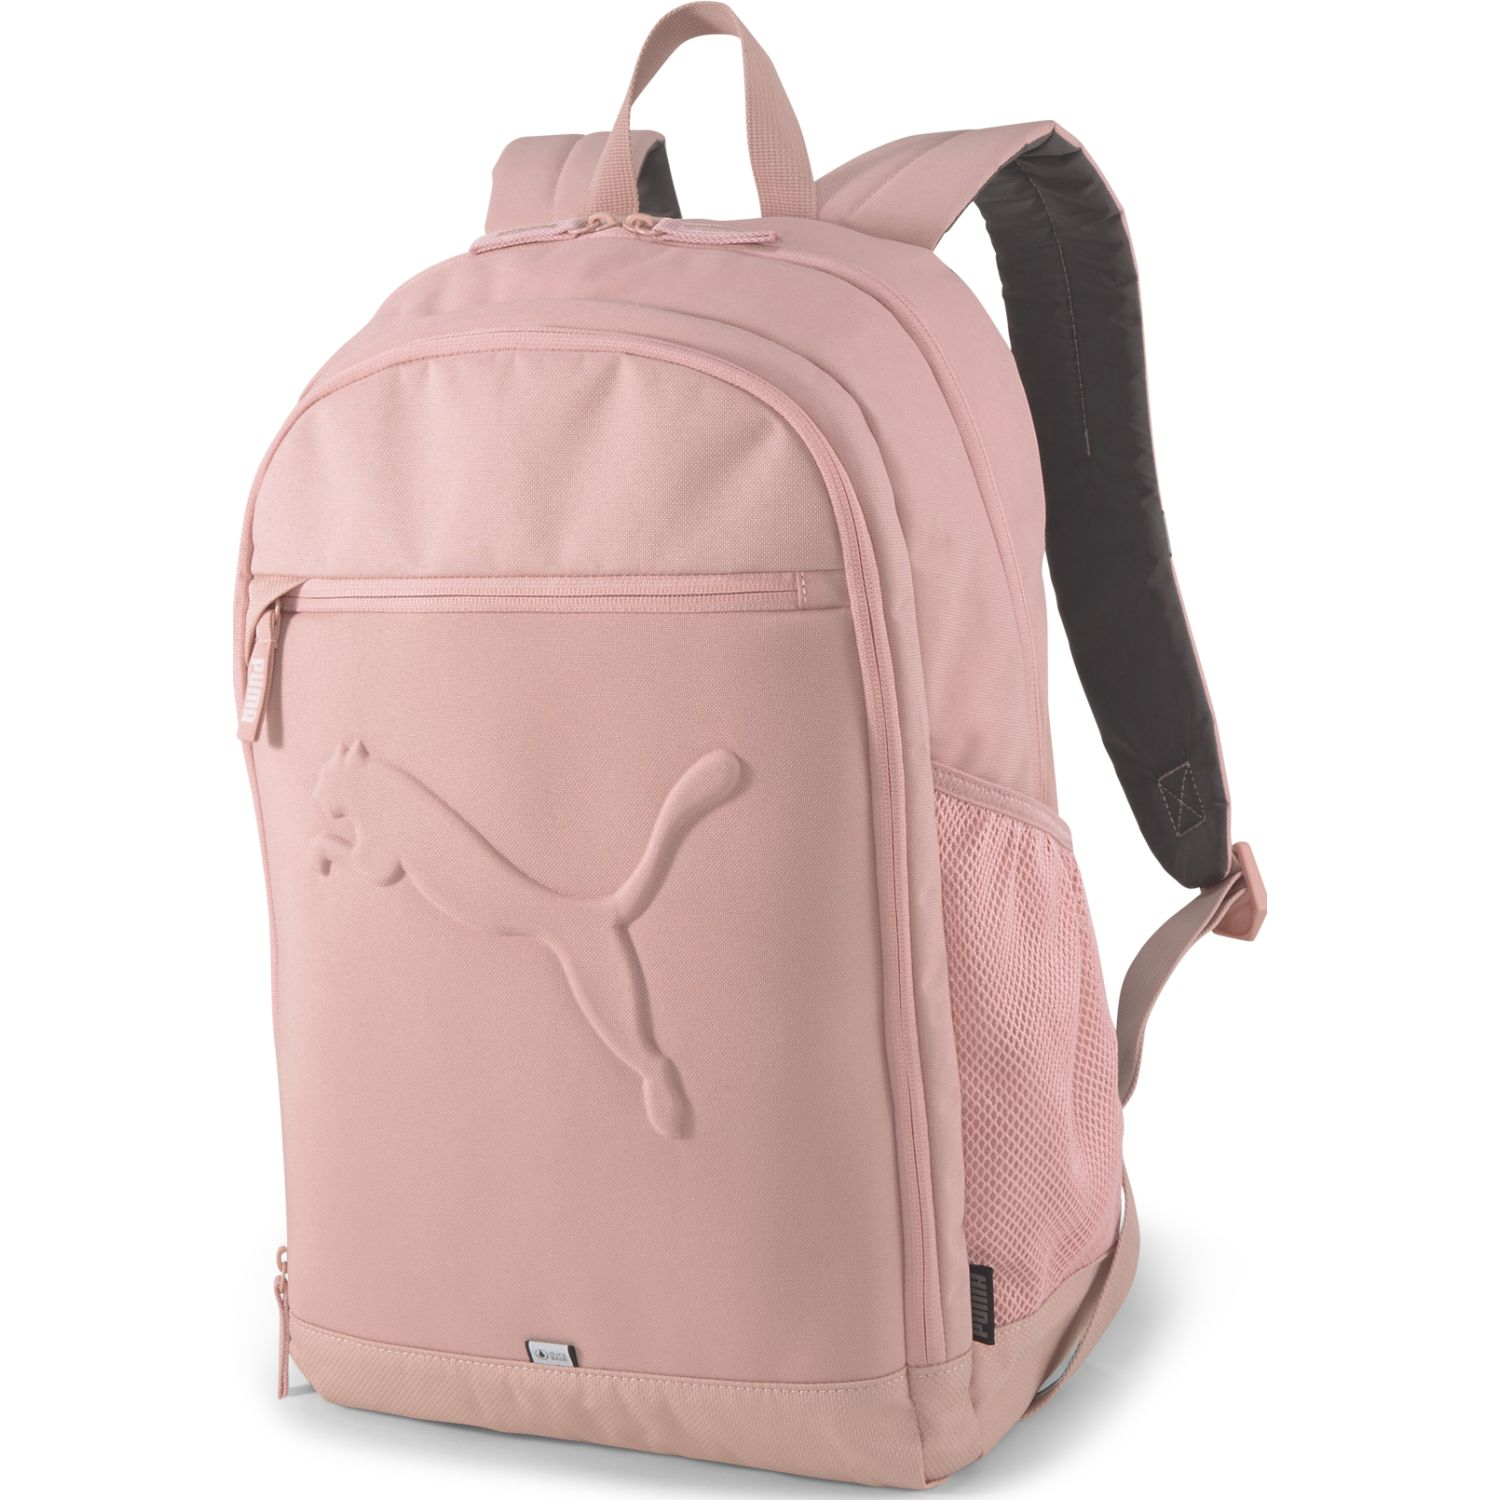 Puma puma buzz backpack Rosado / negro Mochilas Multipropósitos